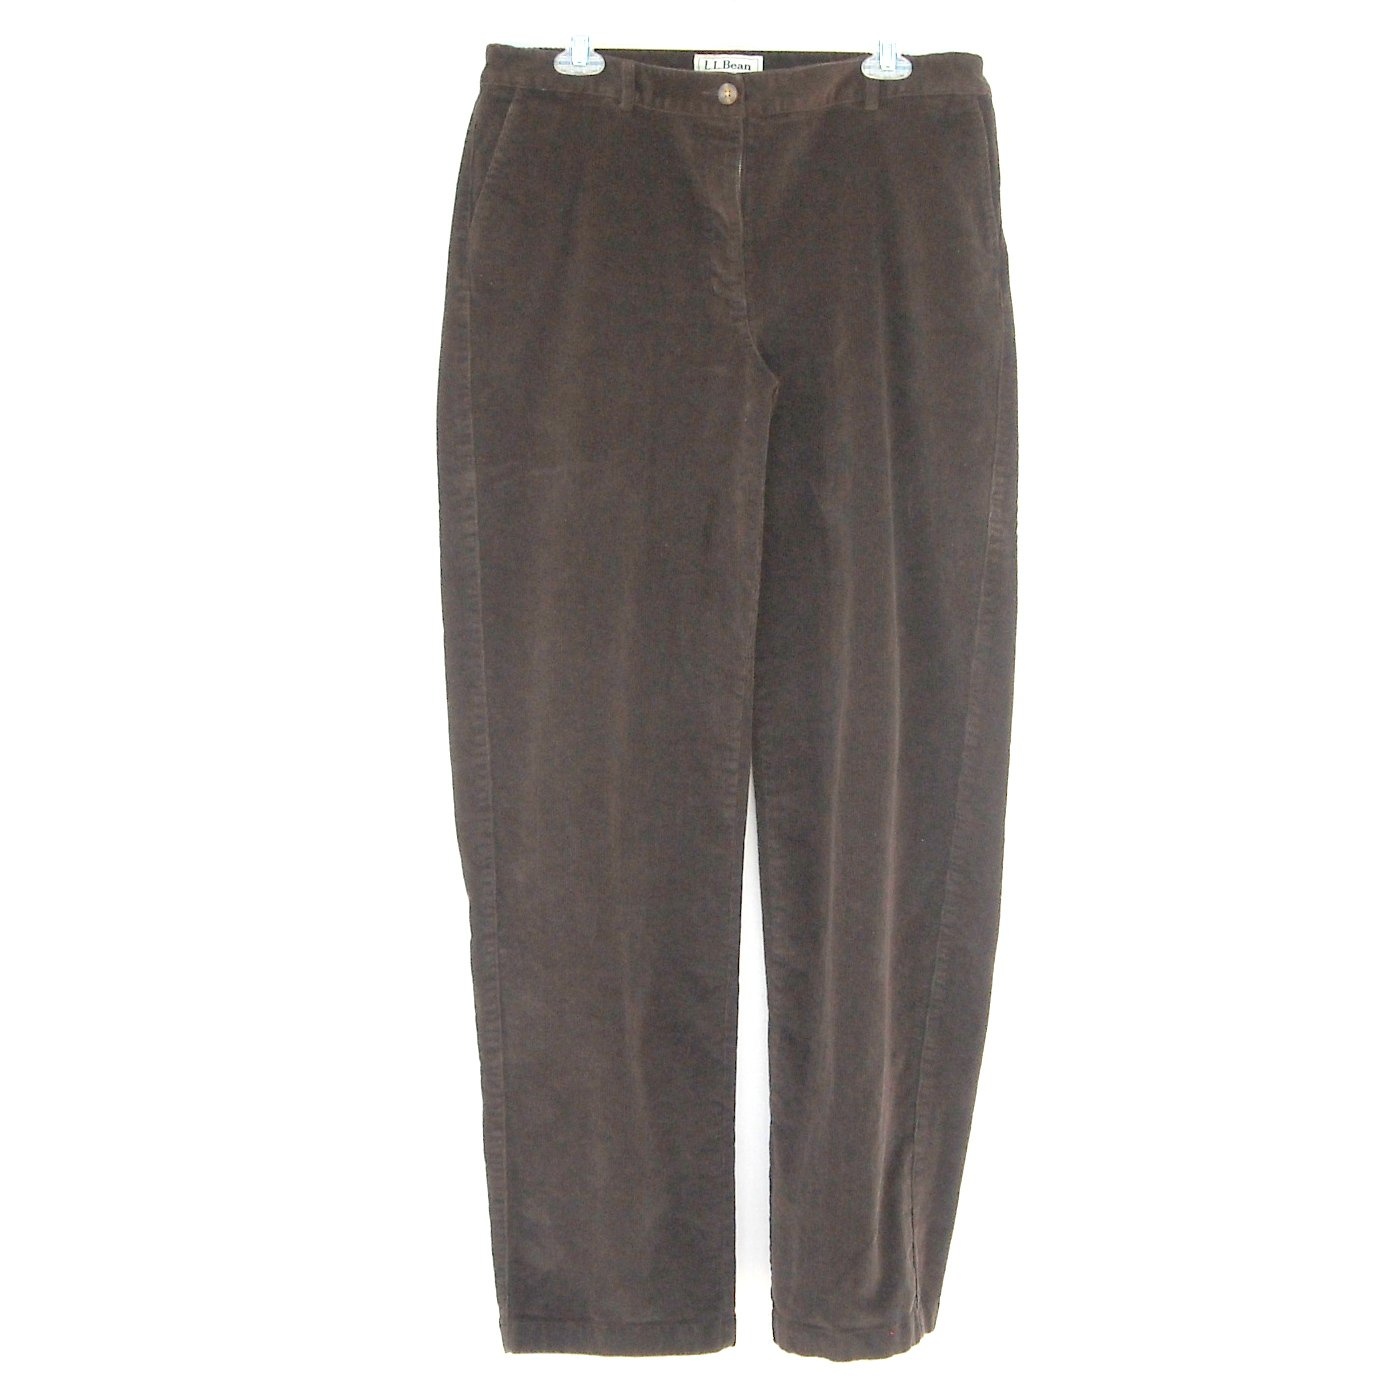 L L Bean Straight Fit Misses Brown Corduroy Pants size 12 Tall